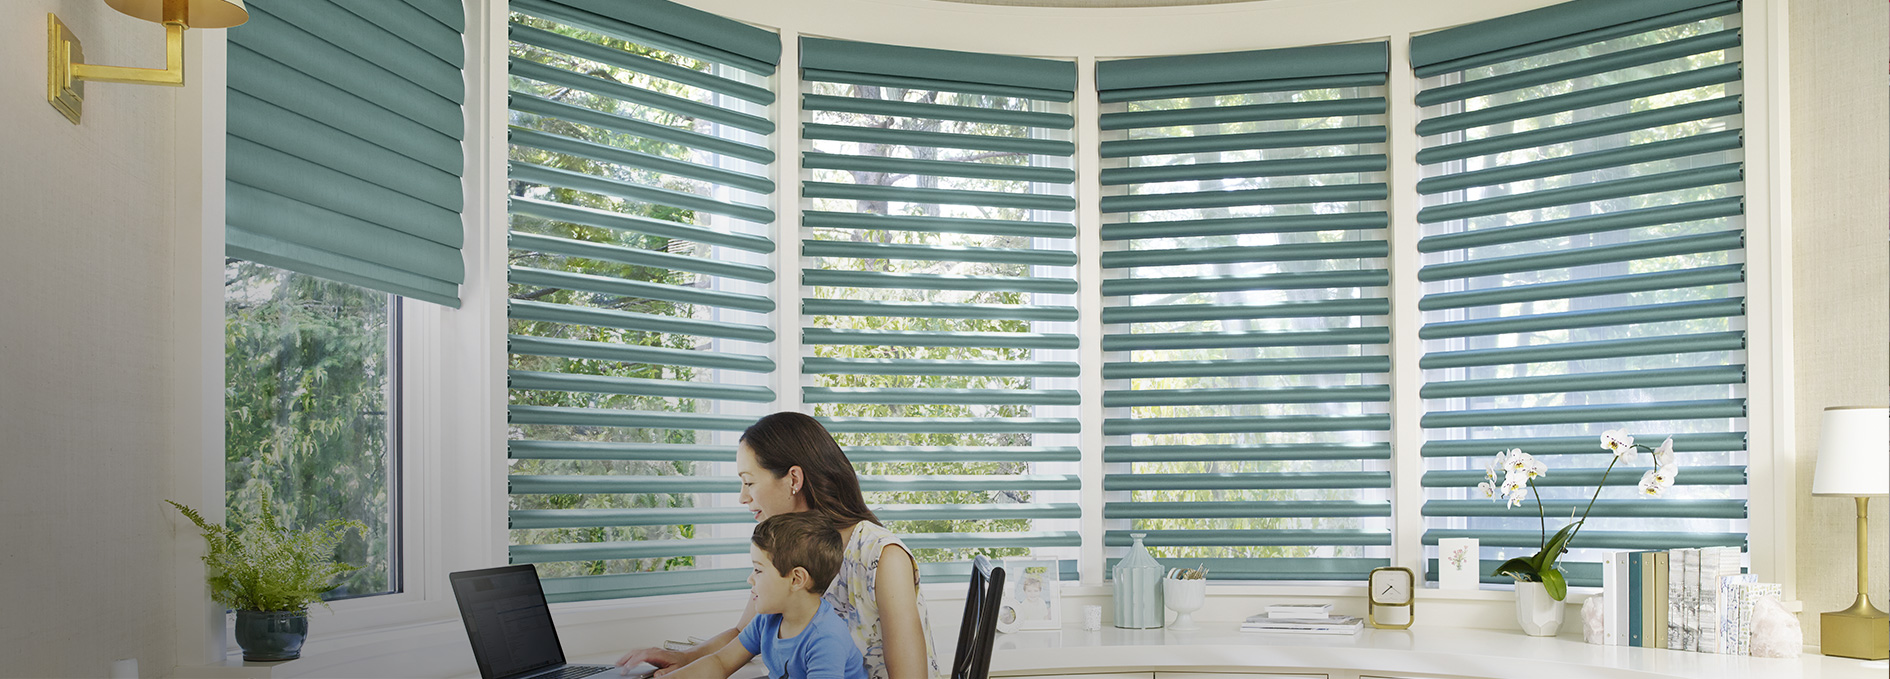 Pet and child safe blinds window coverings today 39 s for Window design solutions